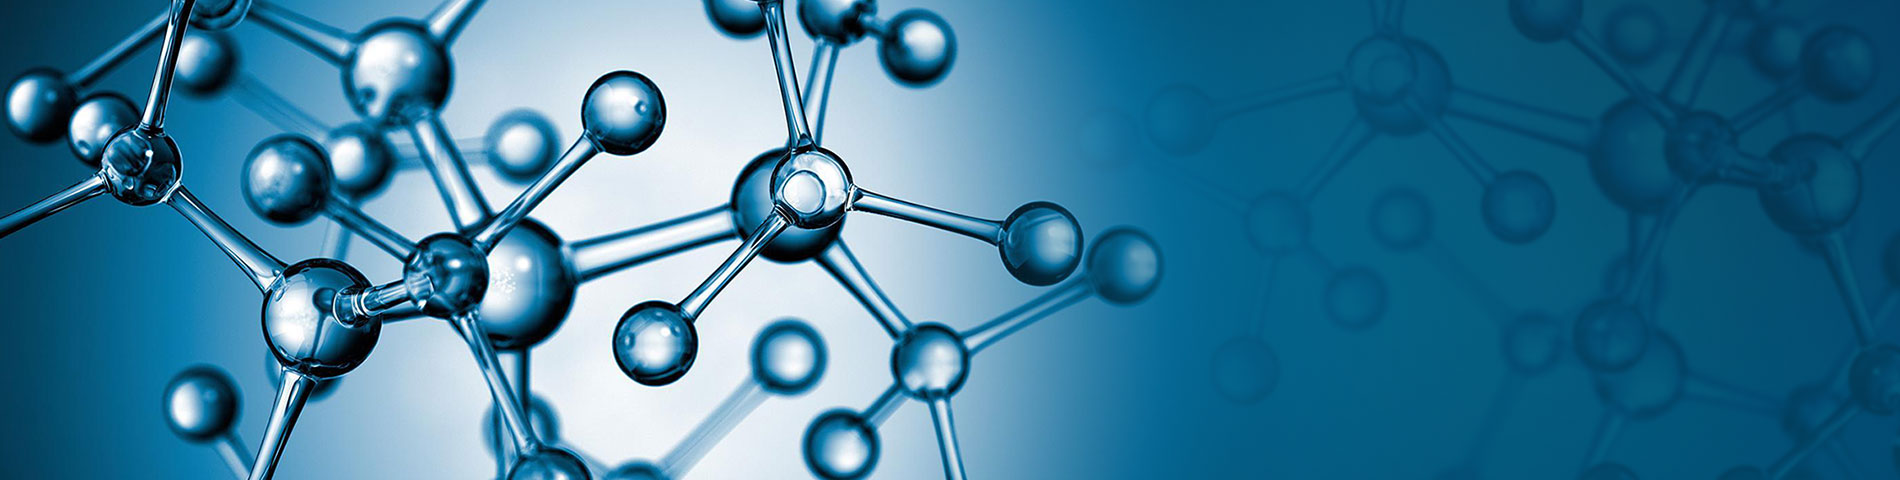 40 Years of Expertise in Specialty Chemicals